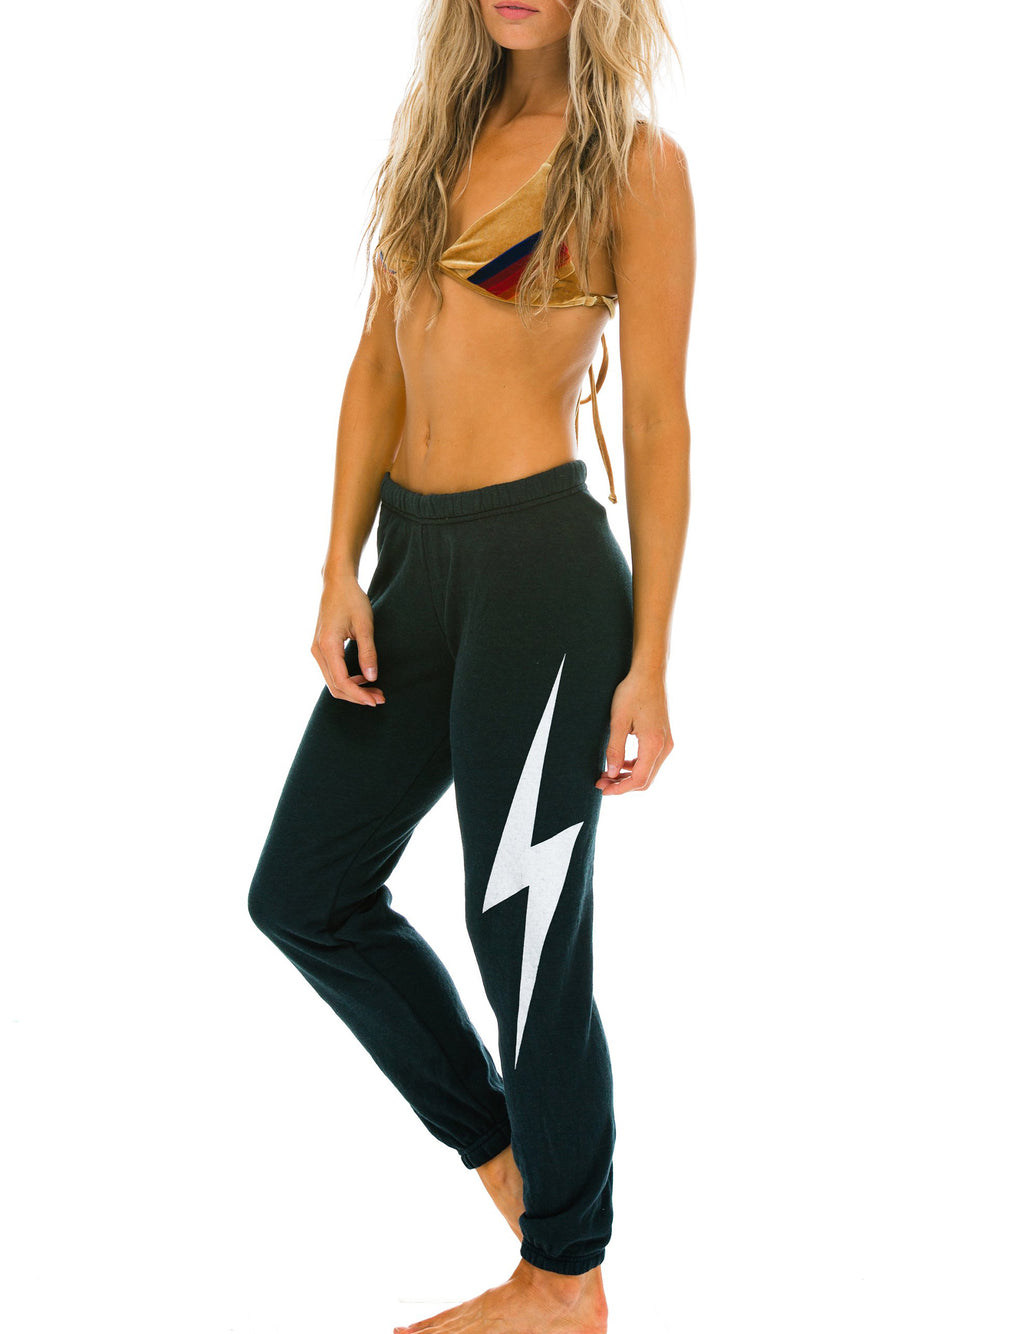 Bolt Womens Sweatpants in Charcoal/White